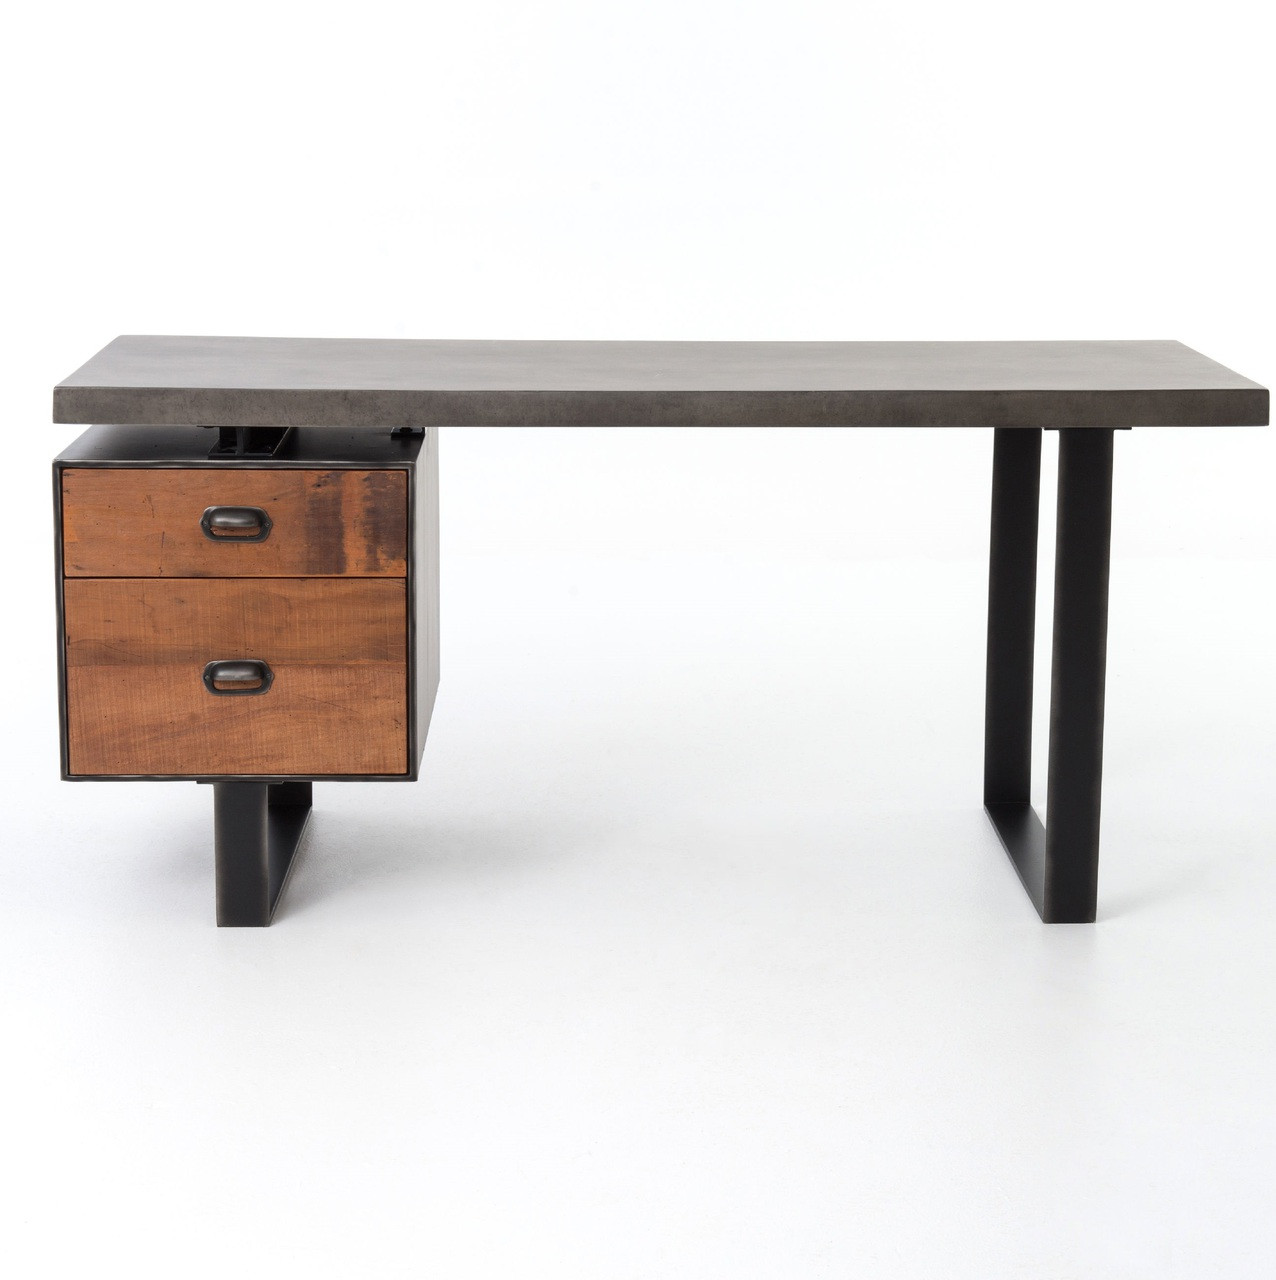 concrete and wood furniture. Clapton Industrial Concrete + Wood Desk With File Drawer And Furniture C